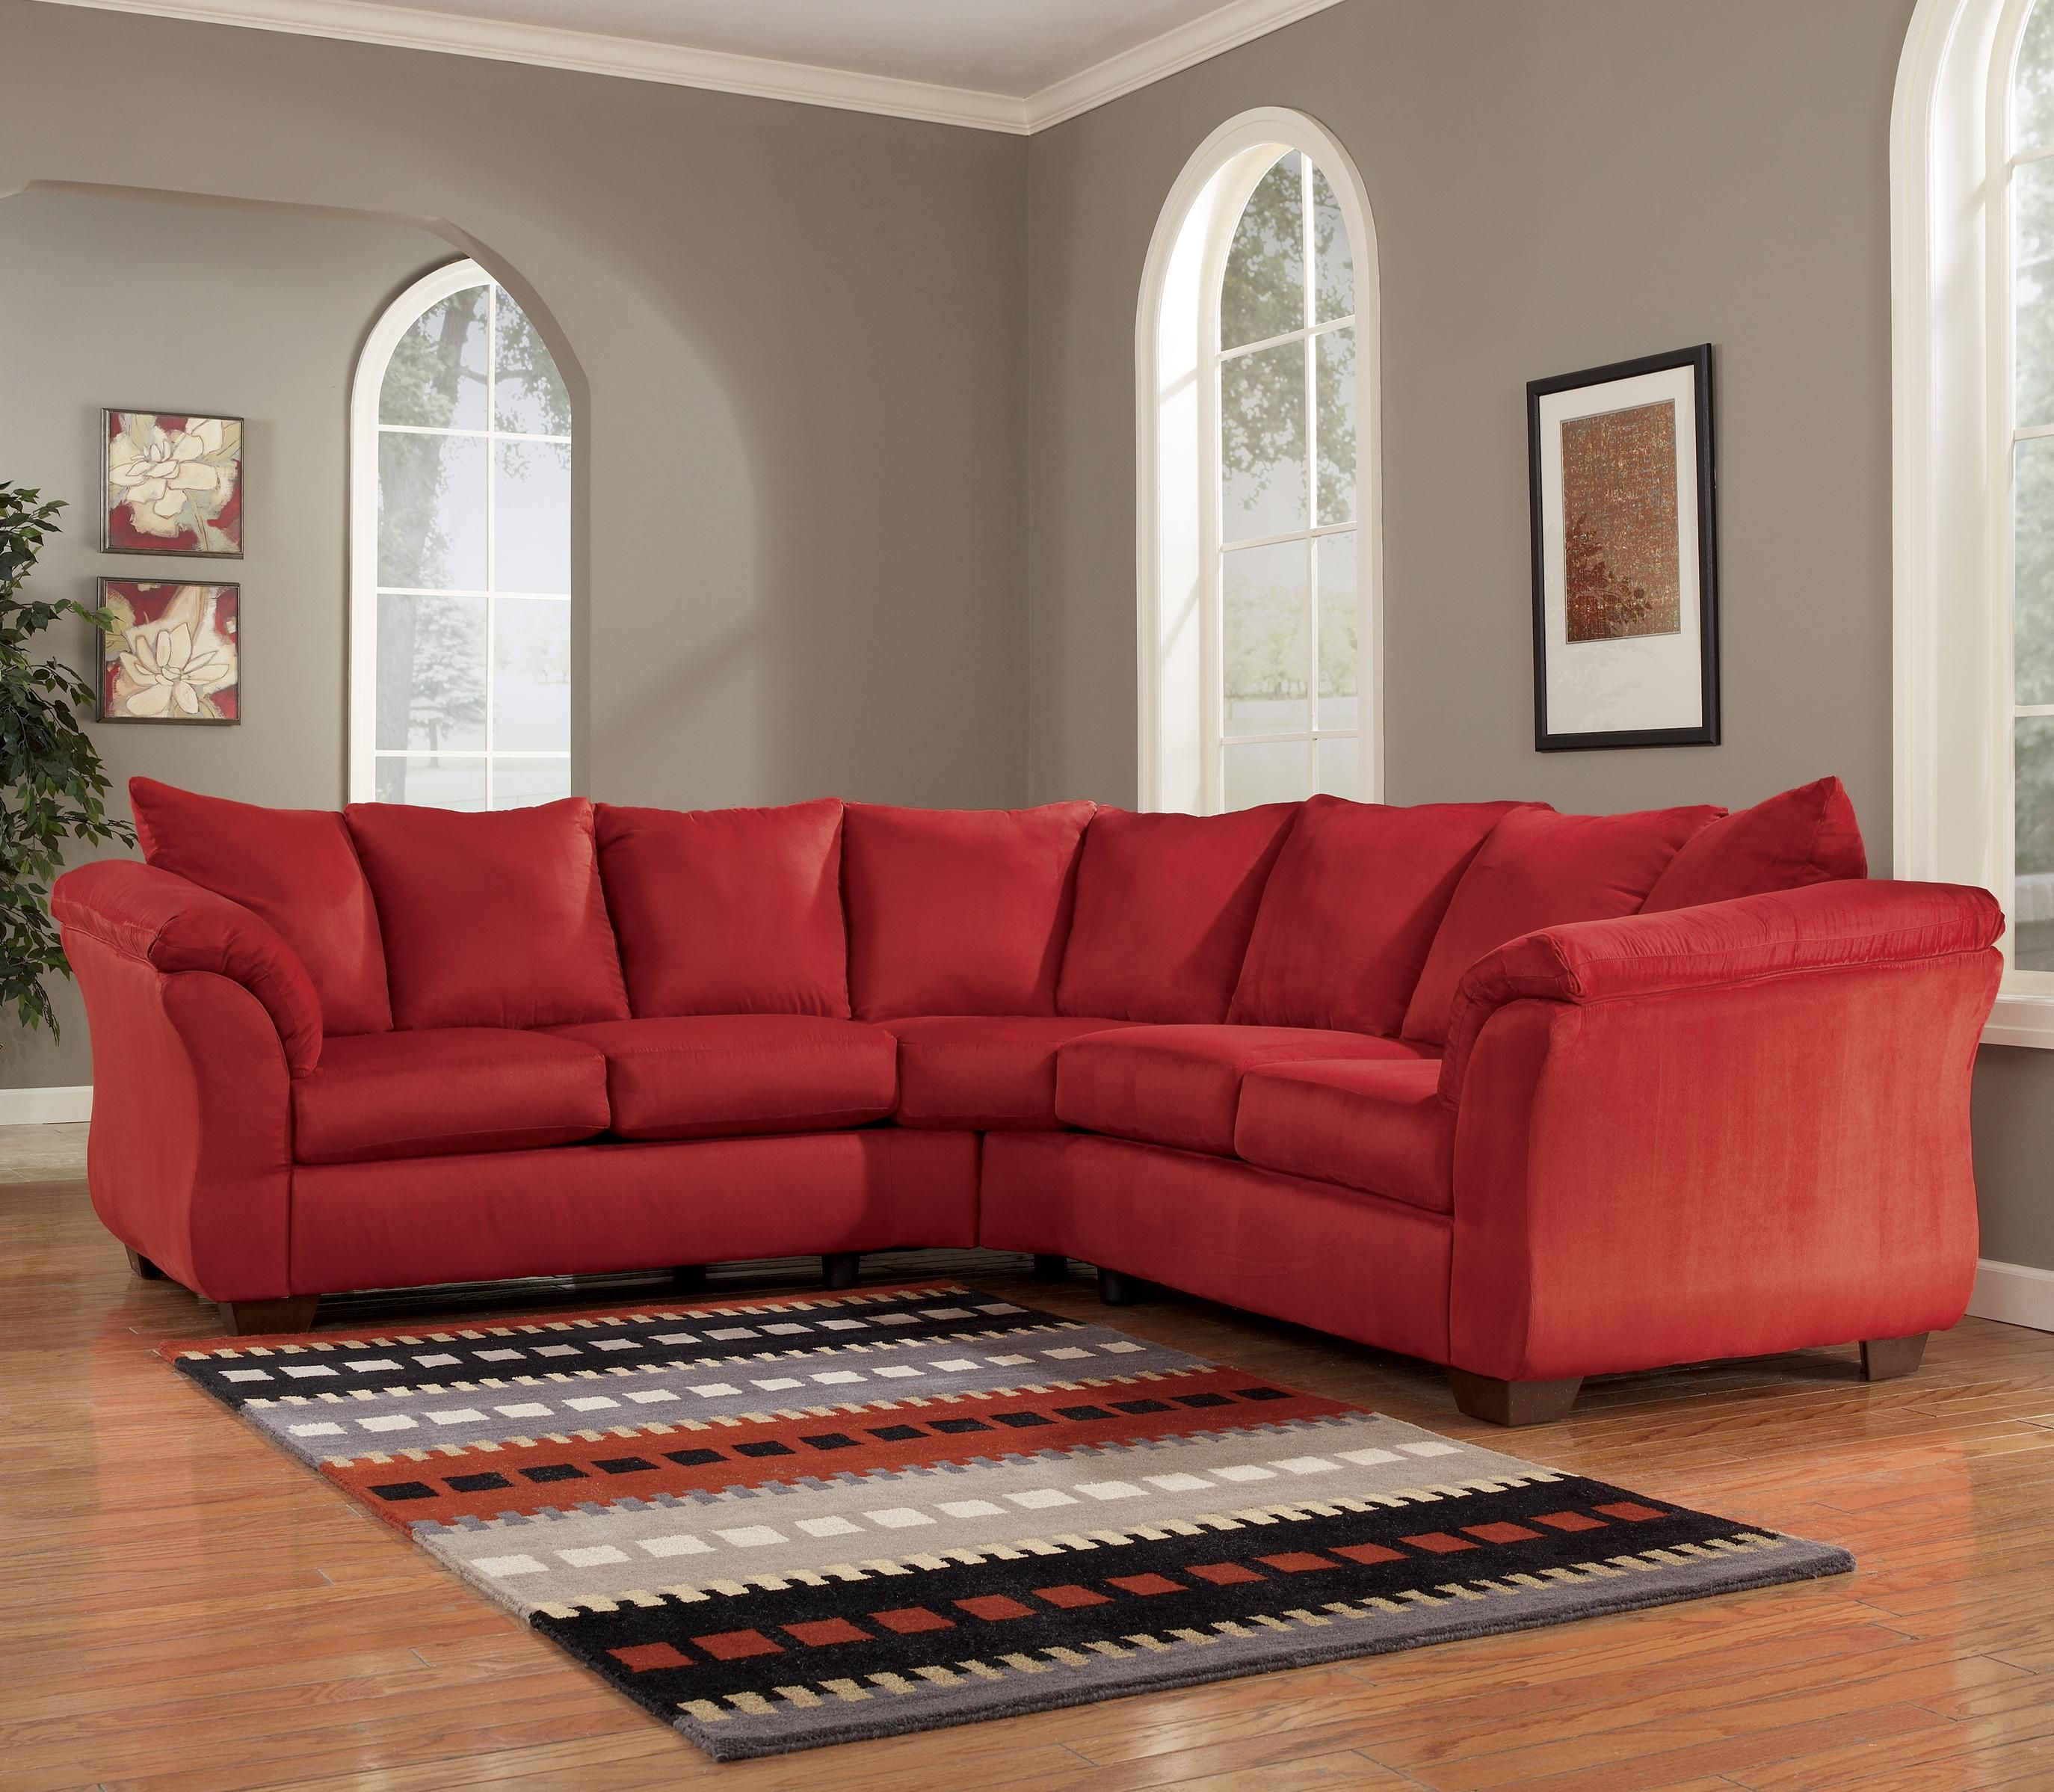 Charming Darcy   Salsa Sectional By Signature Design By Ashley. Get Your Darcy    Salsa Sectional At Railway Freight Furniture, Albany GA Furniture Store.